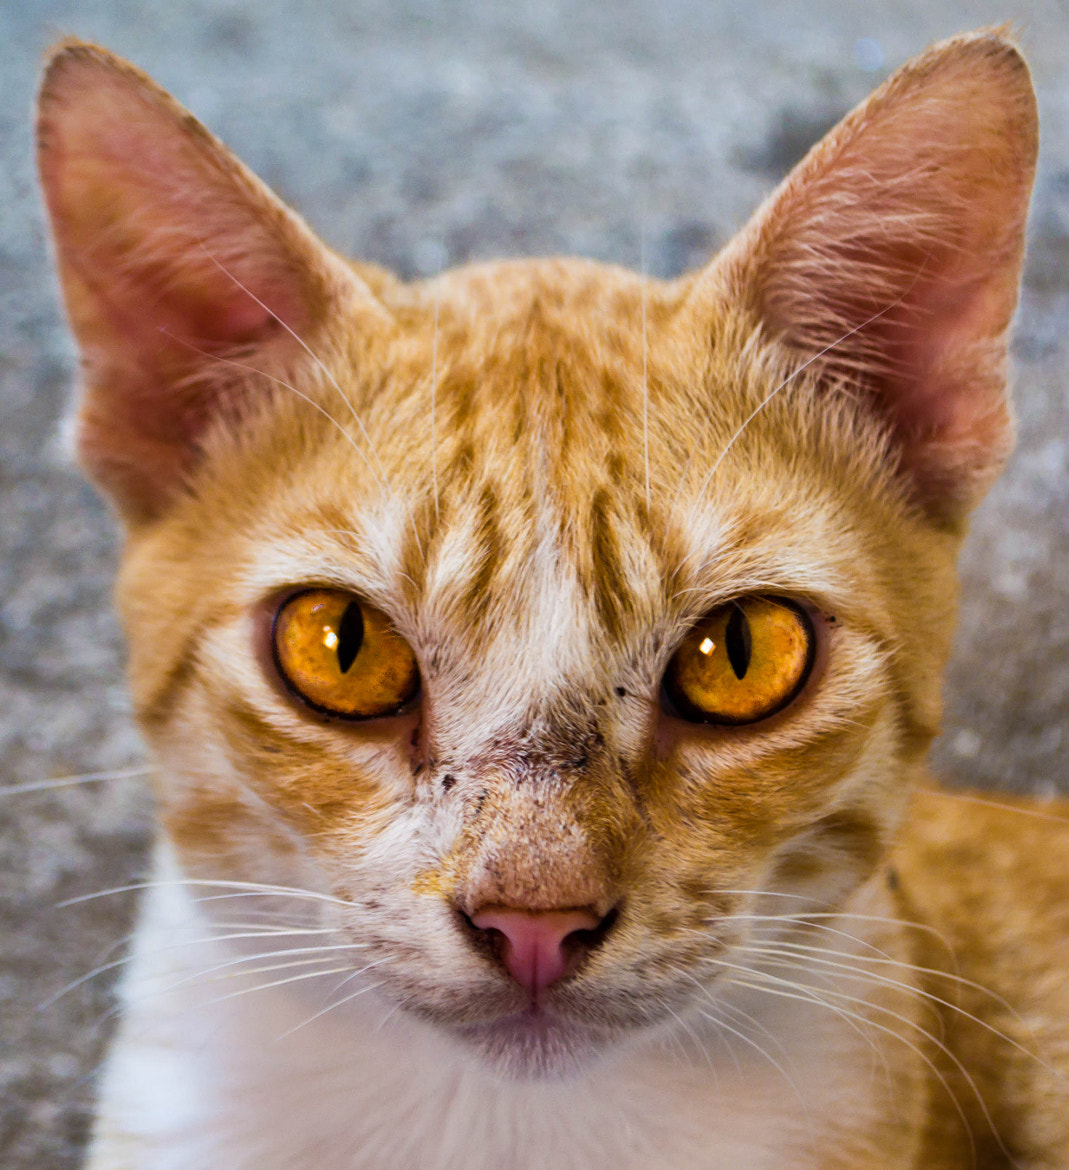 Photograph Olhar felino by Edson Lopes on 500px